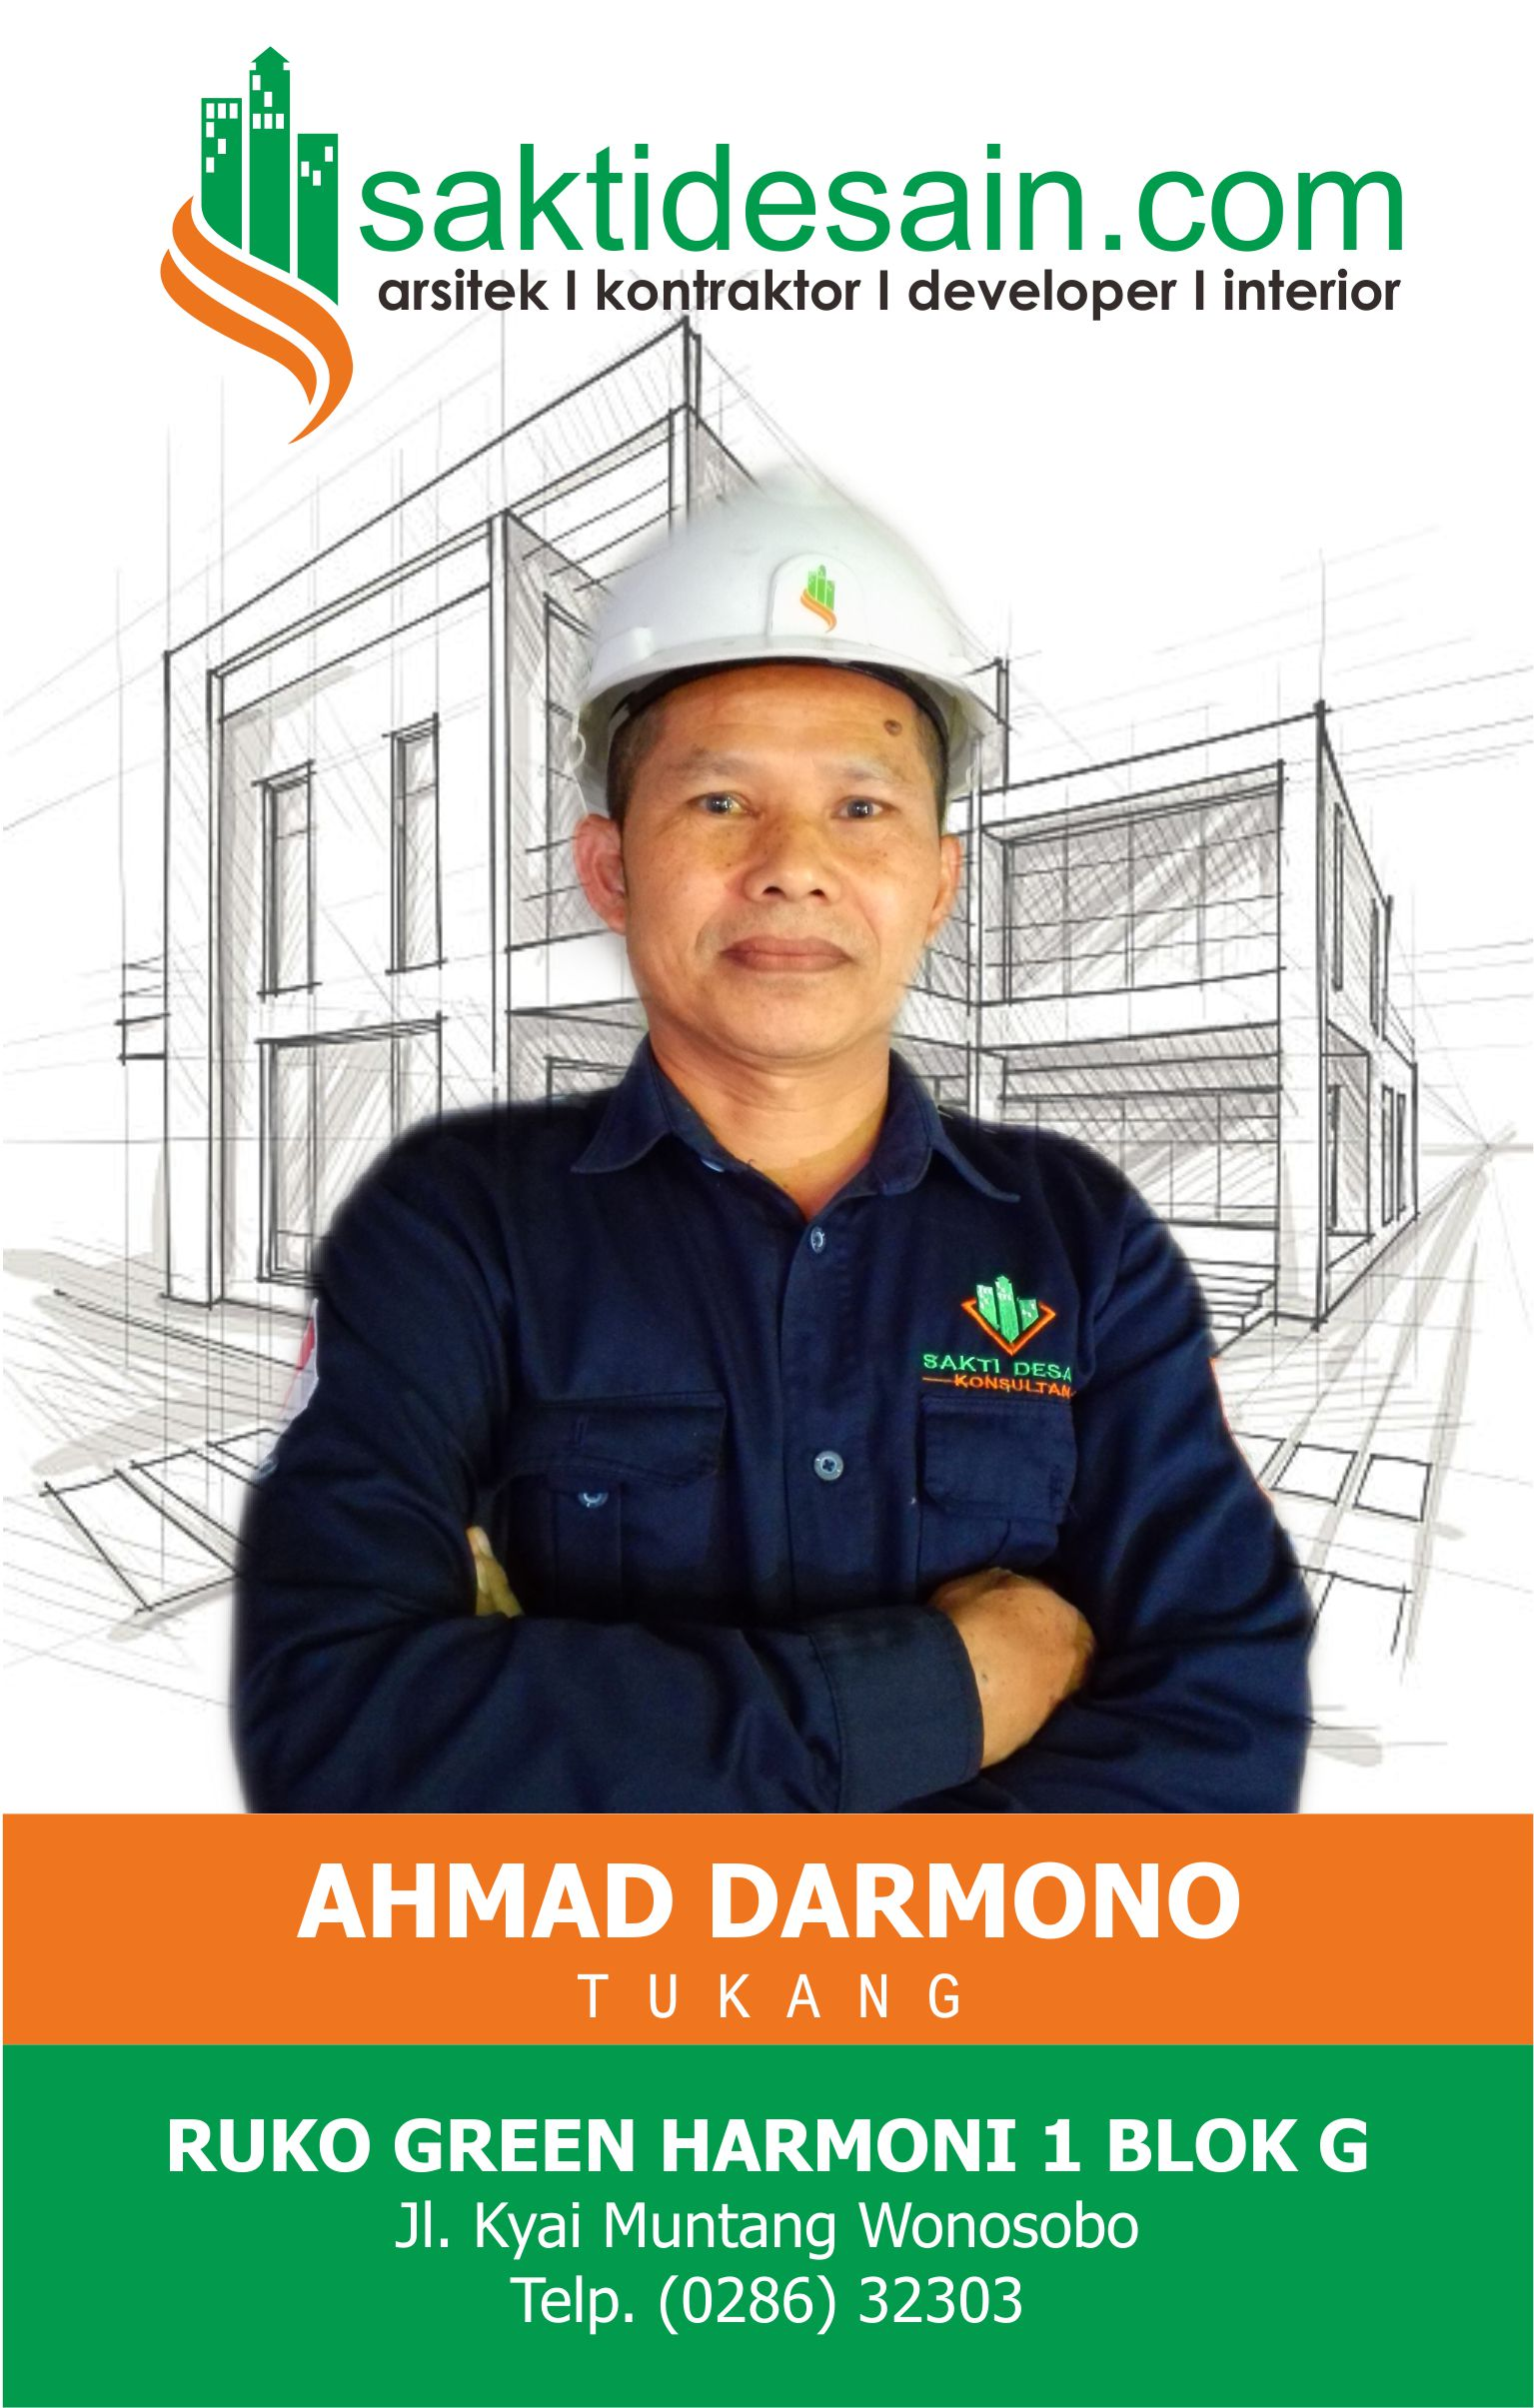 ahmad darmono, tukang(furniture)